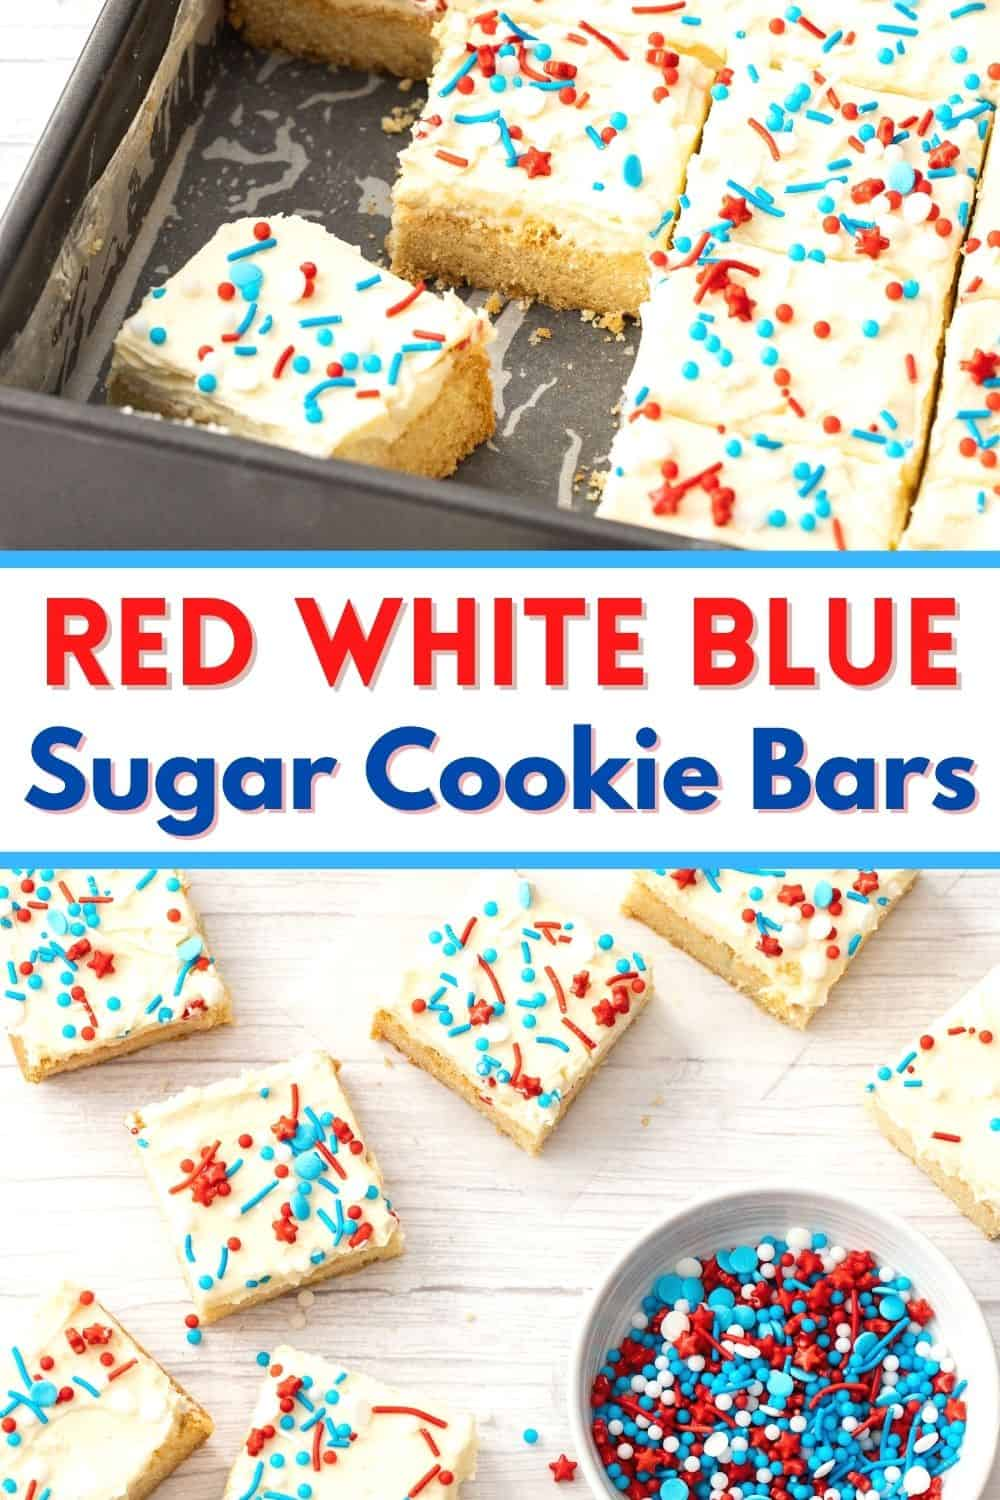 These all American cookies are easy, delicious and the best treat for celebrating the red, white and blue! Everyone loves these frosted sugar cookie bars for 4th of July, Memorial Day and Labor Day.